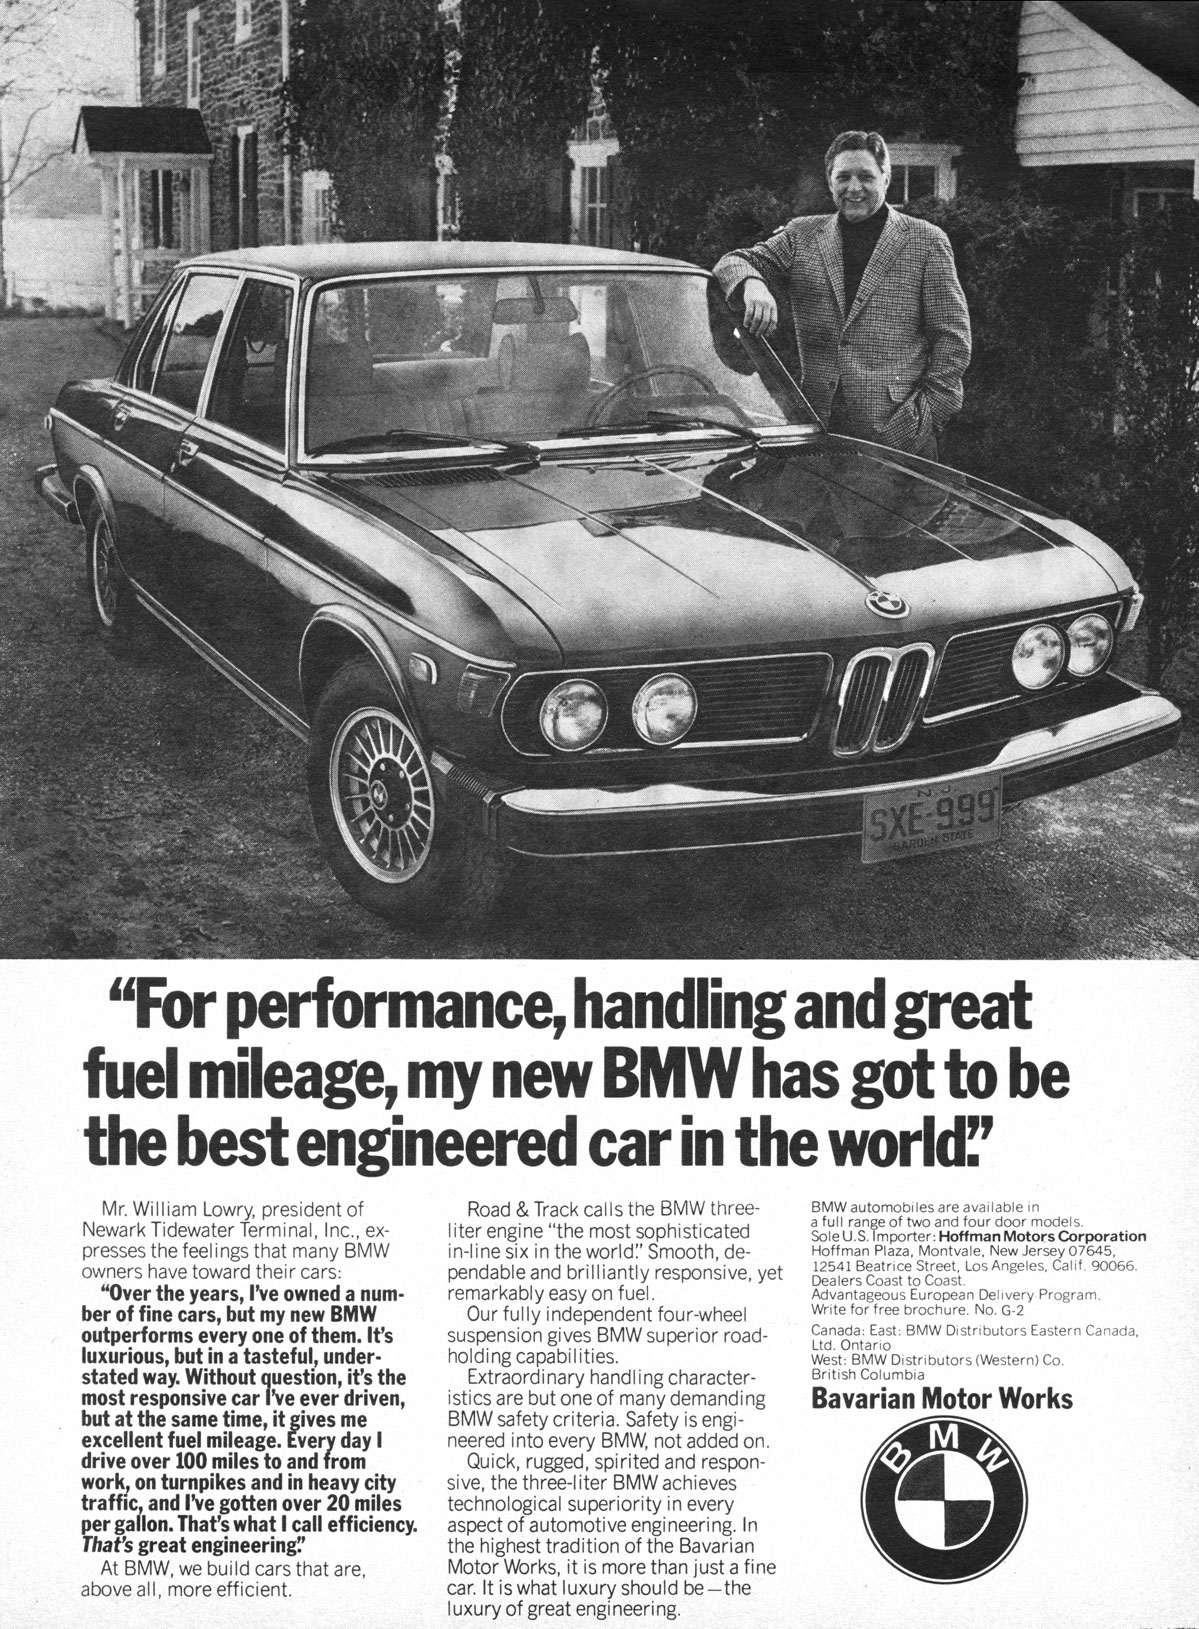 'For performance, handling and great fuel mileage, my new BMW has got to be the best engineered car in the world!'  Mr. William Lowry, president of Newark Tidewater Terminal, Inc., ex-presses the feelings that many BMW owners have toward their cars: 'Over the years, I've owned a num-ber of fine cars, but my new BMW outperforms every one of them. It's luxurious, but in a tasteful, under-stated way. Without question, it's the most responsive car I've ever driven, but at the same time, it gives me excellent fuel mileage. Every day I drive over 100 miles to and from work, on turnpikes and in heavy city traffic, and I've gotten over 20 miles per gallon. That's what I call efficiency. That's great engineering:' At BMW, we build cars that are, above all, more efficient.  Road & Track calls the BMW three-liter engine 'the most sophisticated in-line six in the world!' Smooth, de-pendable and brilliantly responsive, yet remarkably easy on fuel. Our fully independent four-wheel suspension gives BMW superior road-holding capabilities. Extraordinary handling character-istics are but one of many demanding BMW safety criteria. Safety is engi-neered into every BMW, not added on. Quick, rugged, spirited and respon-sive, the three-I iter BMW achieves technological superiority in every aspect of automotive engineering. In the highest tradition of the Bavarian Motor Works, it is more than just a fine car. It is what luxury should be—the luxury of great engineering.  BMW automobiles are available in a full range of two and four door models. Sole U.S. Importer: Hoffman Motors Corporation Hoffman Plaza, Montvale, New Jersey 07645, 12541 Beatrice Street, Los Angeles. Calif. 90066. Dealers Coast to Coast. Advantageous European Delivery Program. Write for free brochure. No. G-2 Canada: East: BMW Distributors Eastern Canada, Ltd. Ontario West: BMW Distributors (Western) Co. British Columbia Bavarian Motor Works